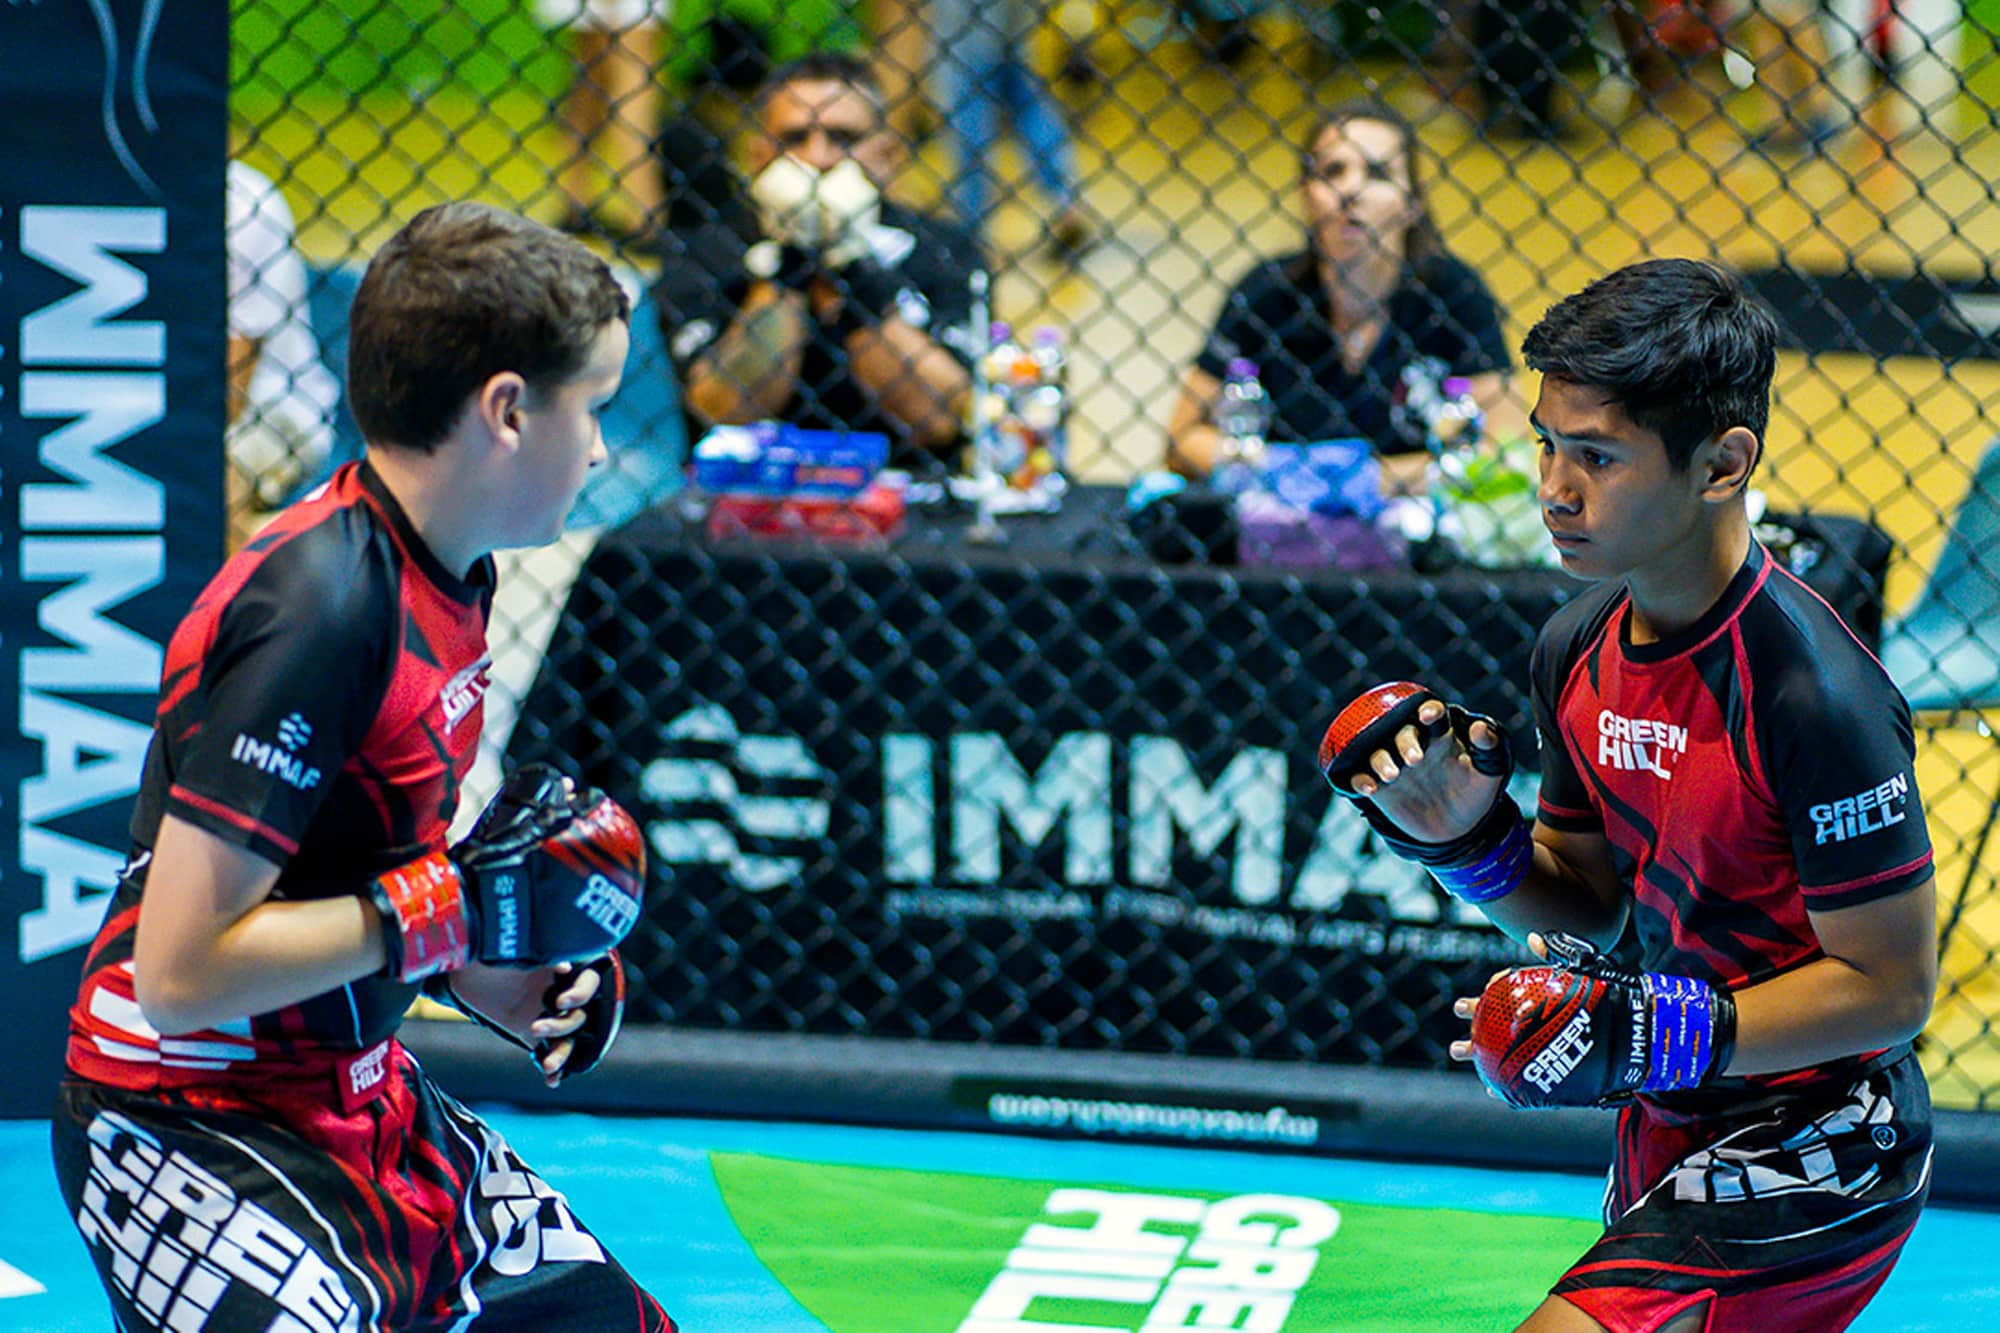 The IMMAF has so far been unable to receive Global Association of International Sports Federations recognition ©IMMAF